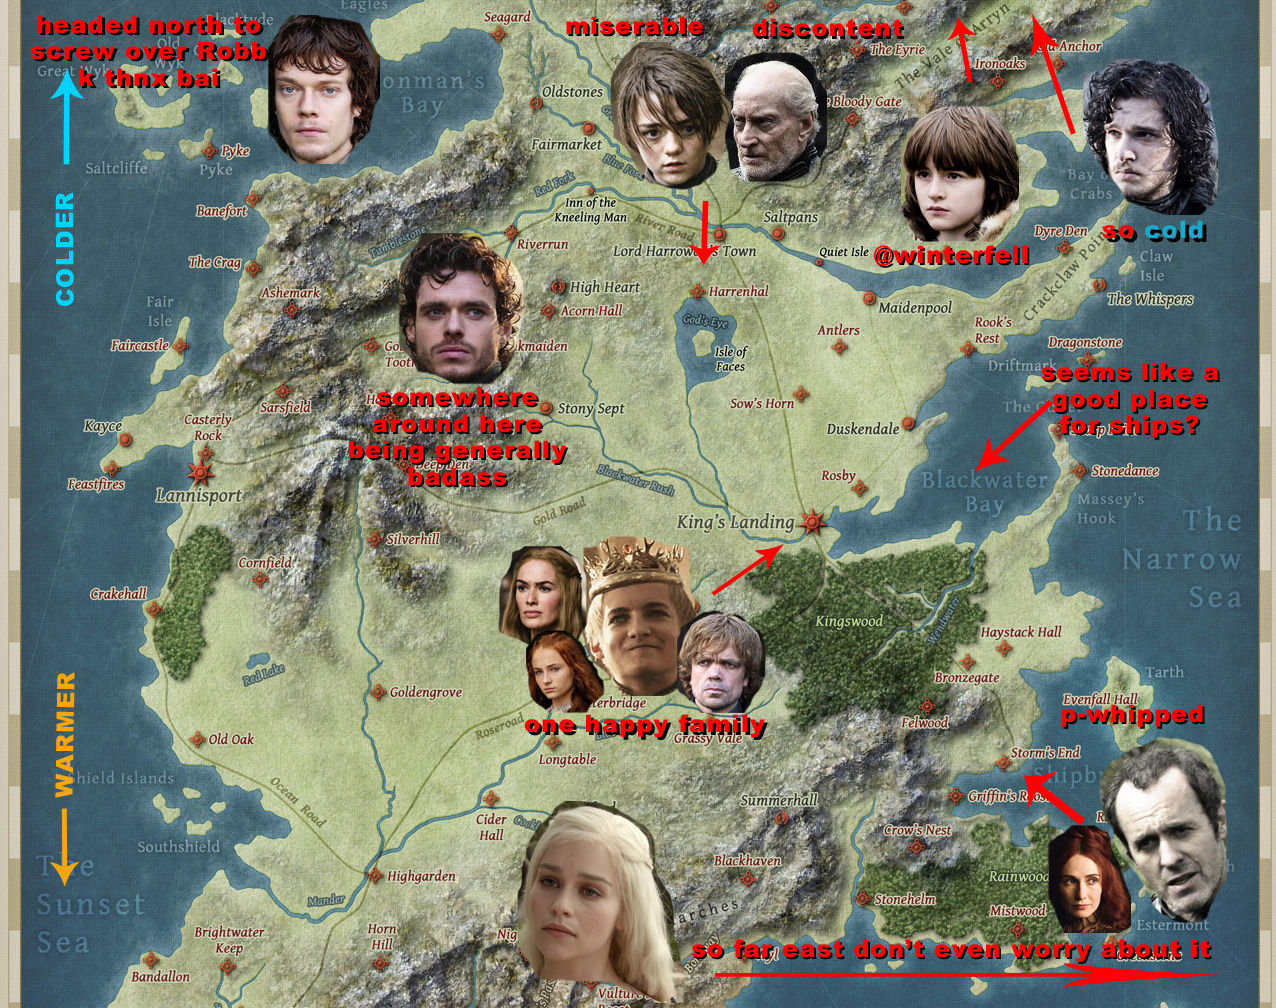 game of thrones characters description